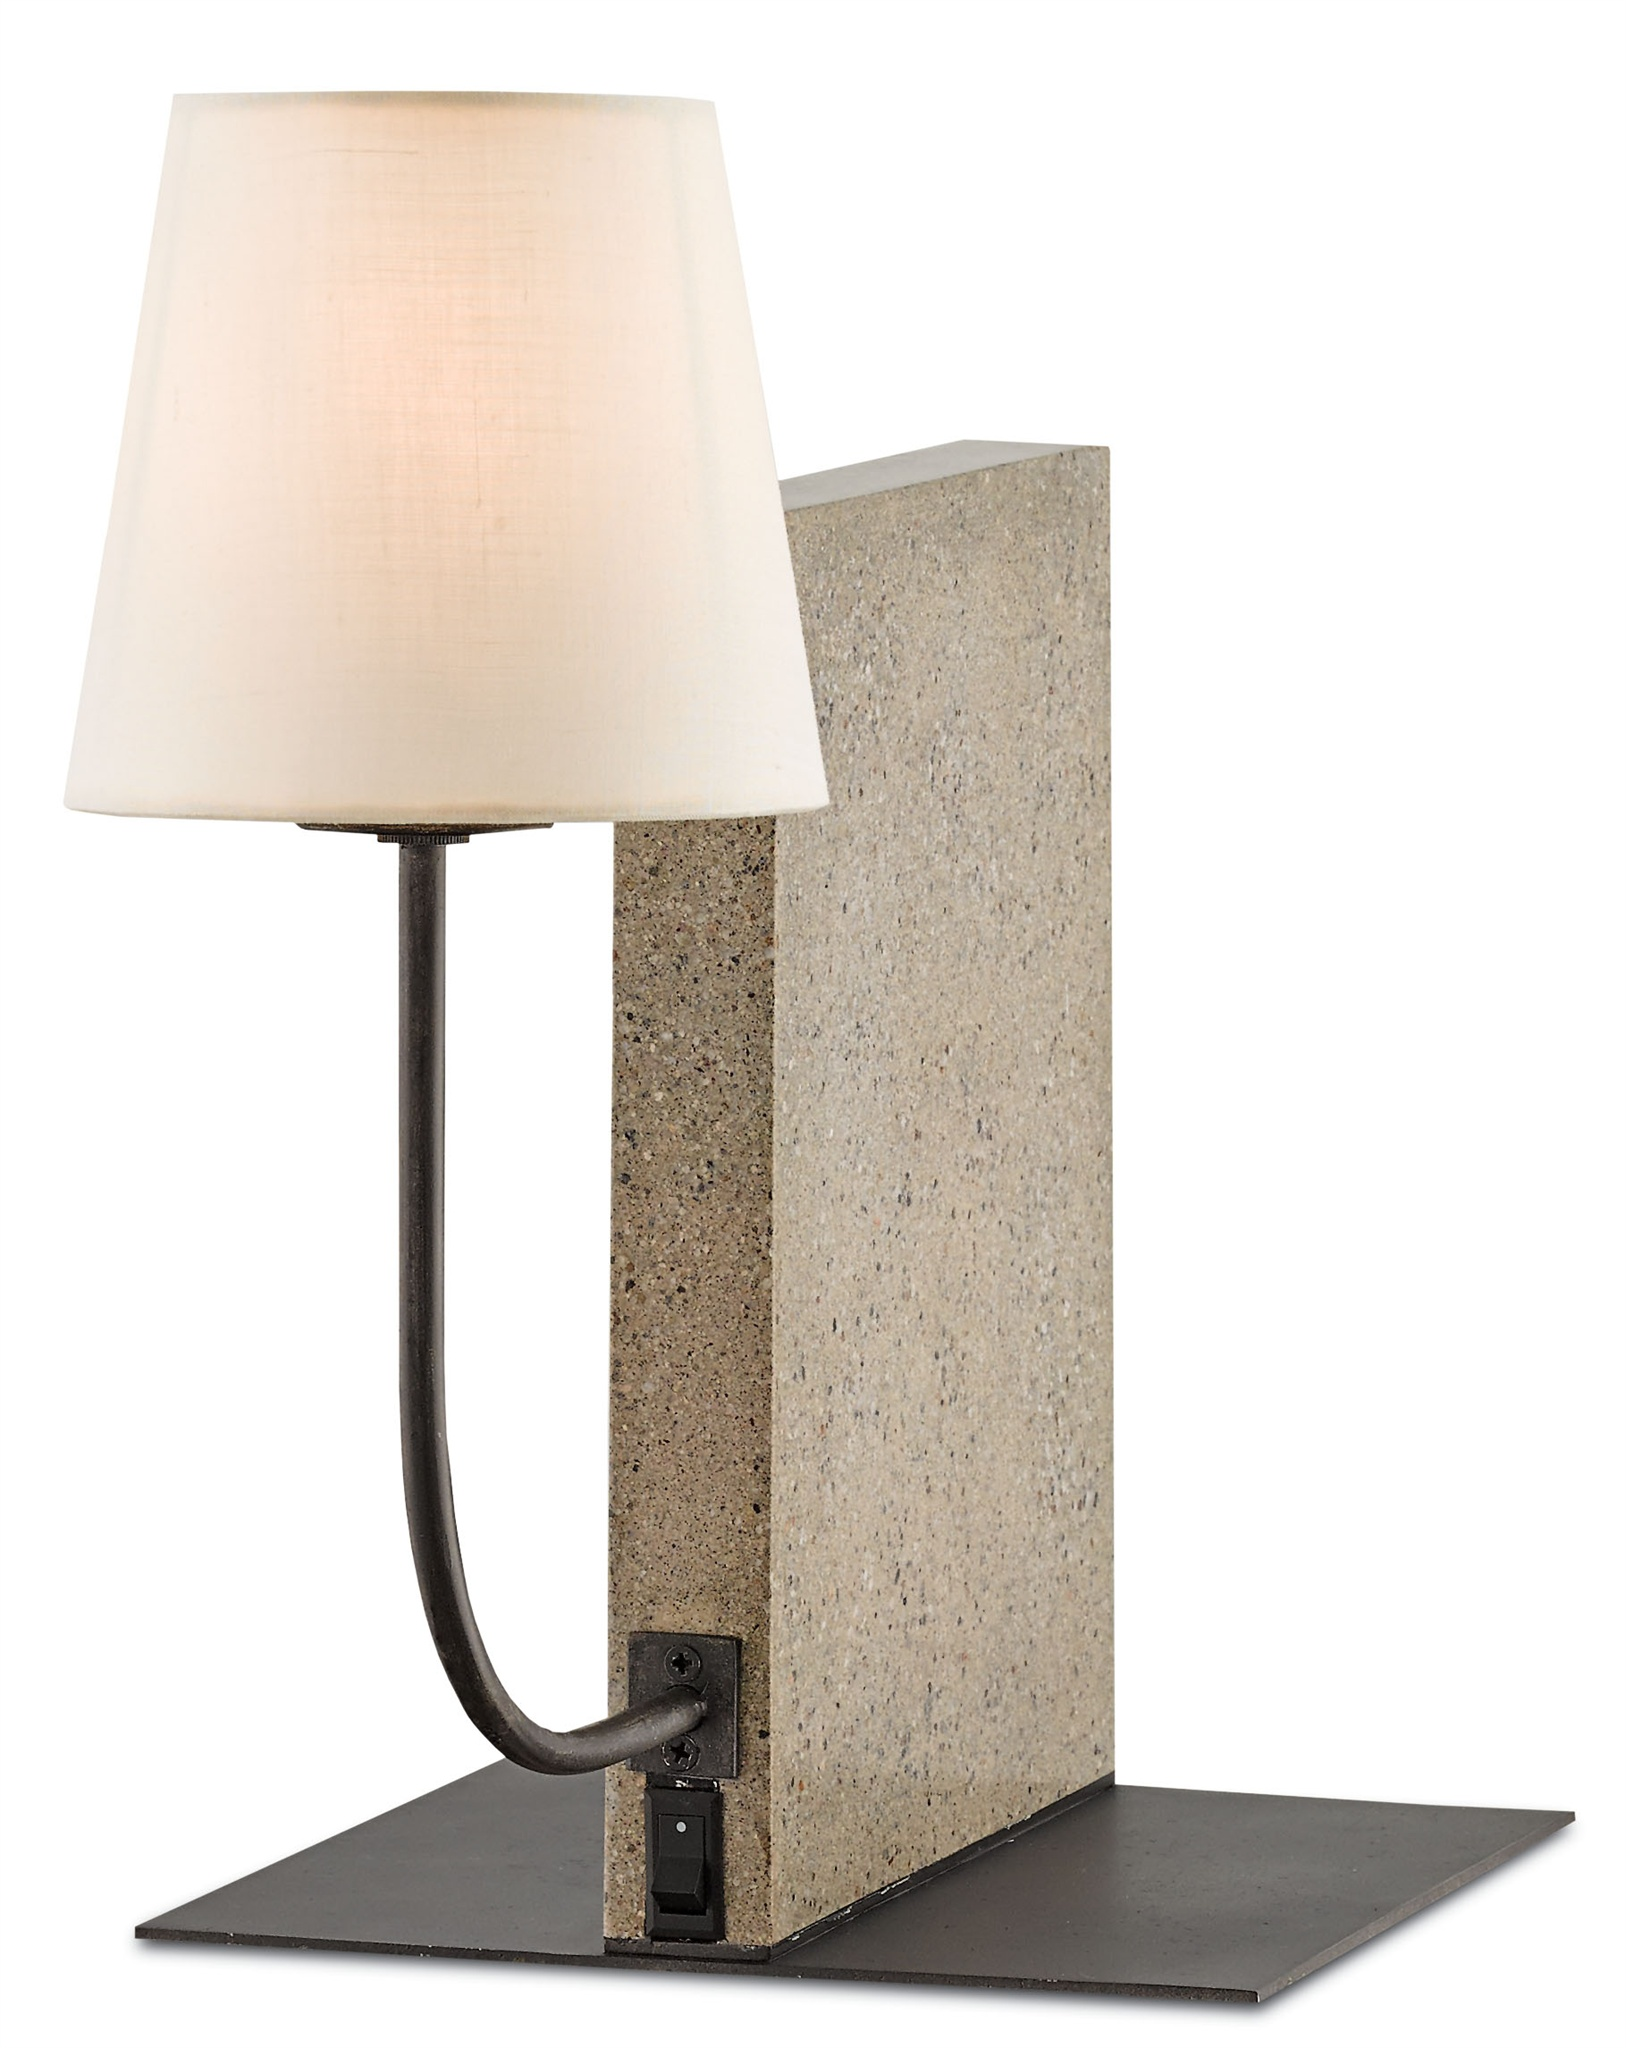 Oldknow Bookcase Table Lamp By Currey And Company 6555 Cc